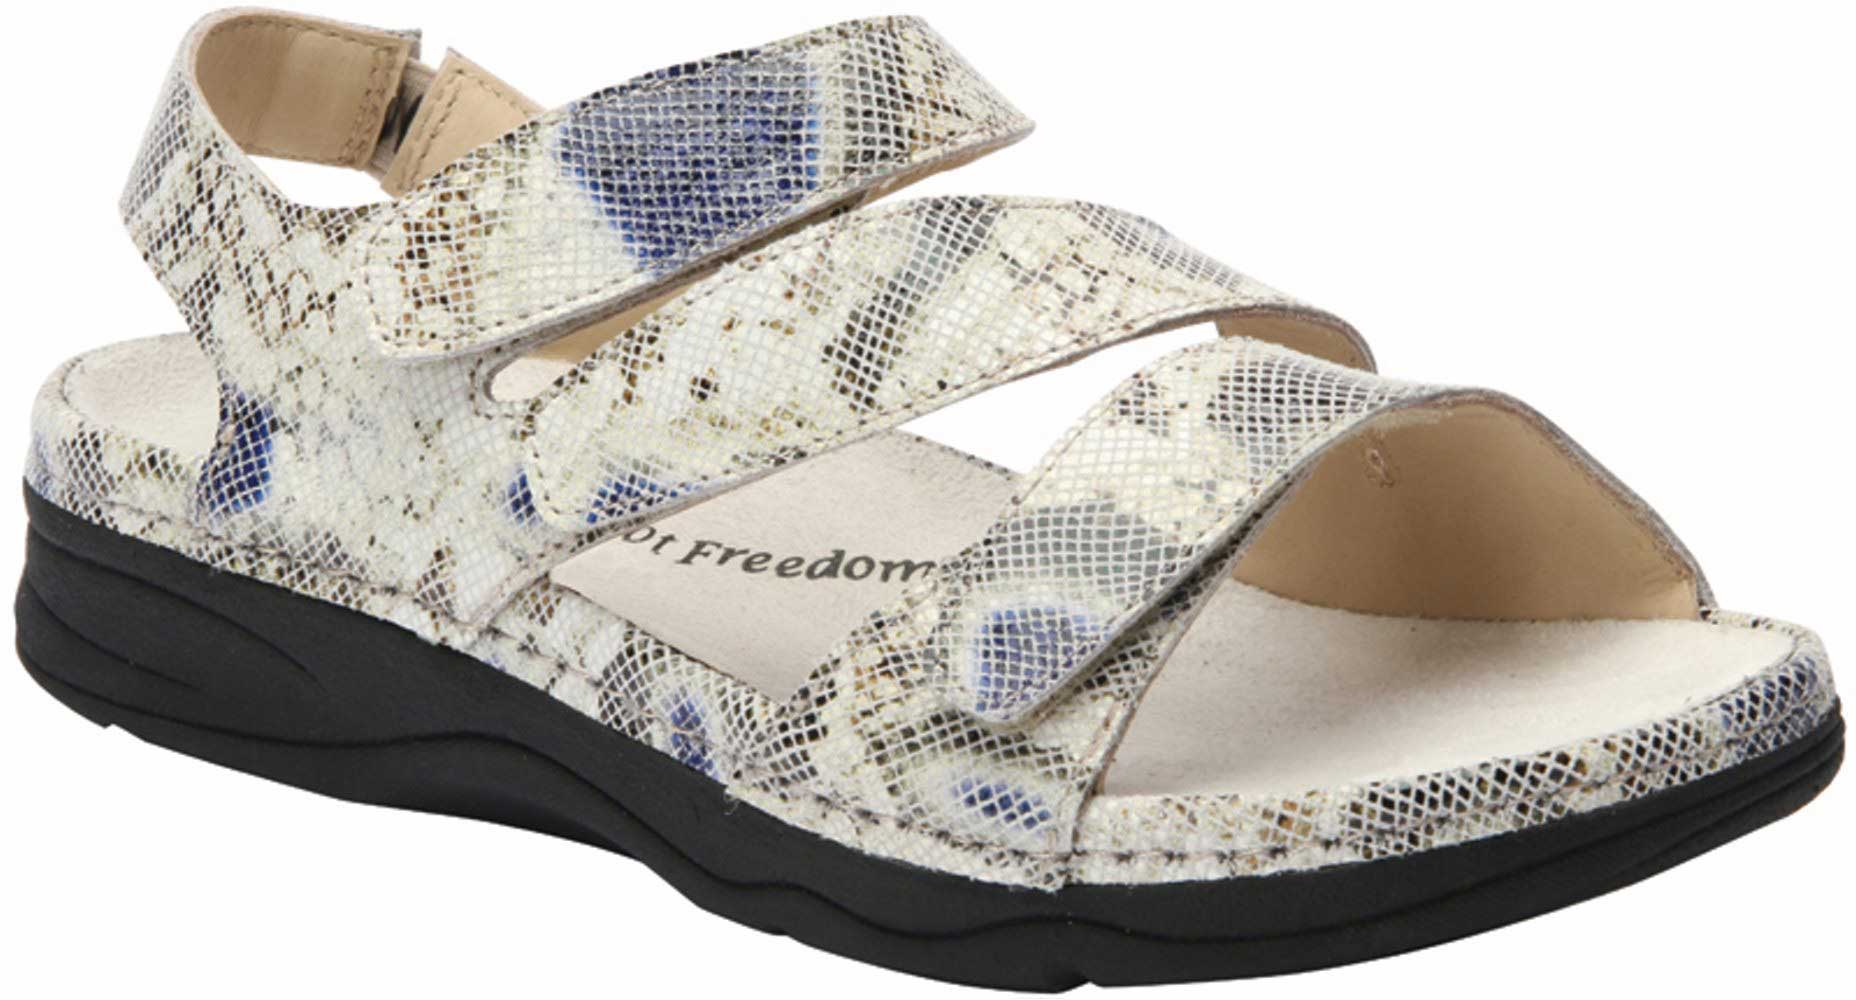 Drew Shoes Angela 17023 - Women's Comfort Therapeutic Diabetic Shoe with Removable Footbed - Sandal - Narrow (AA) - X-Wide (2E) - Extra Depth for Orthotics